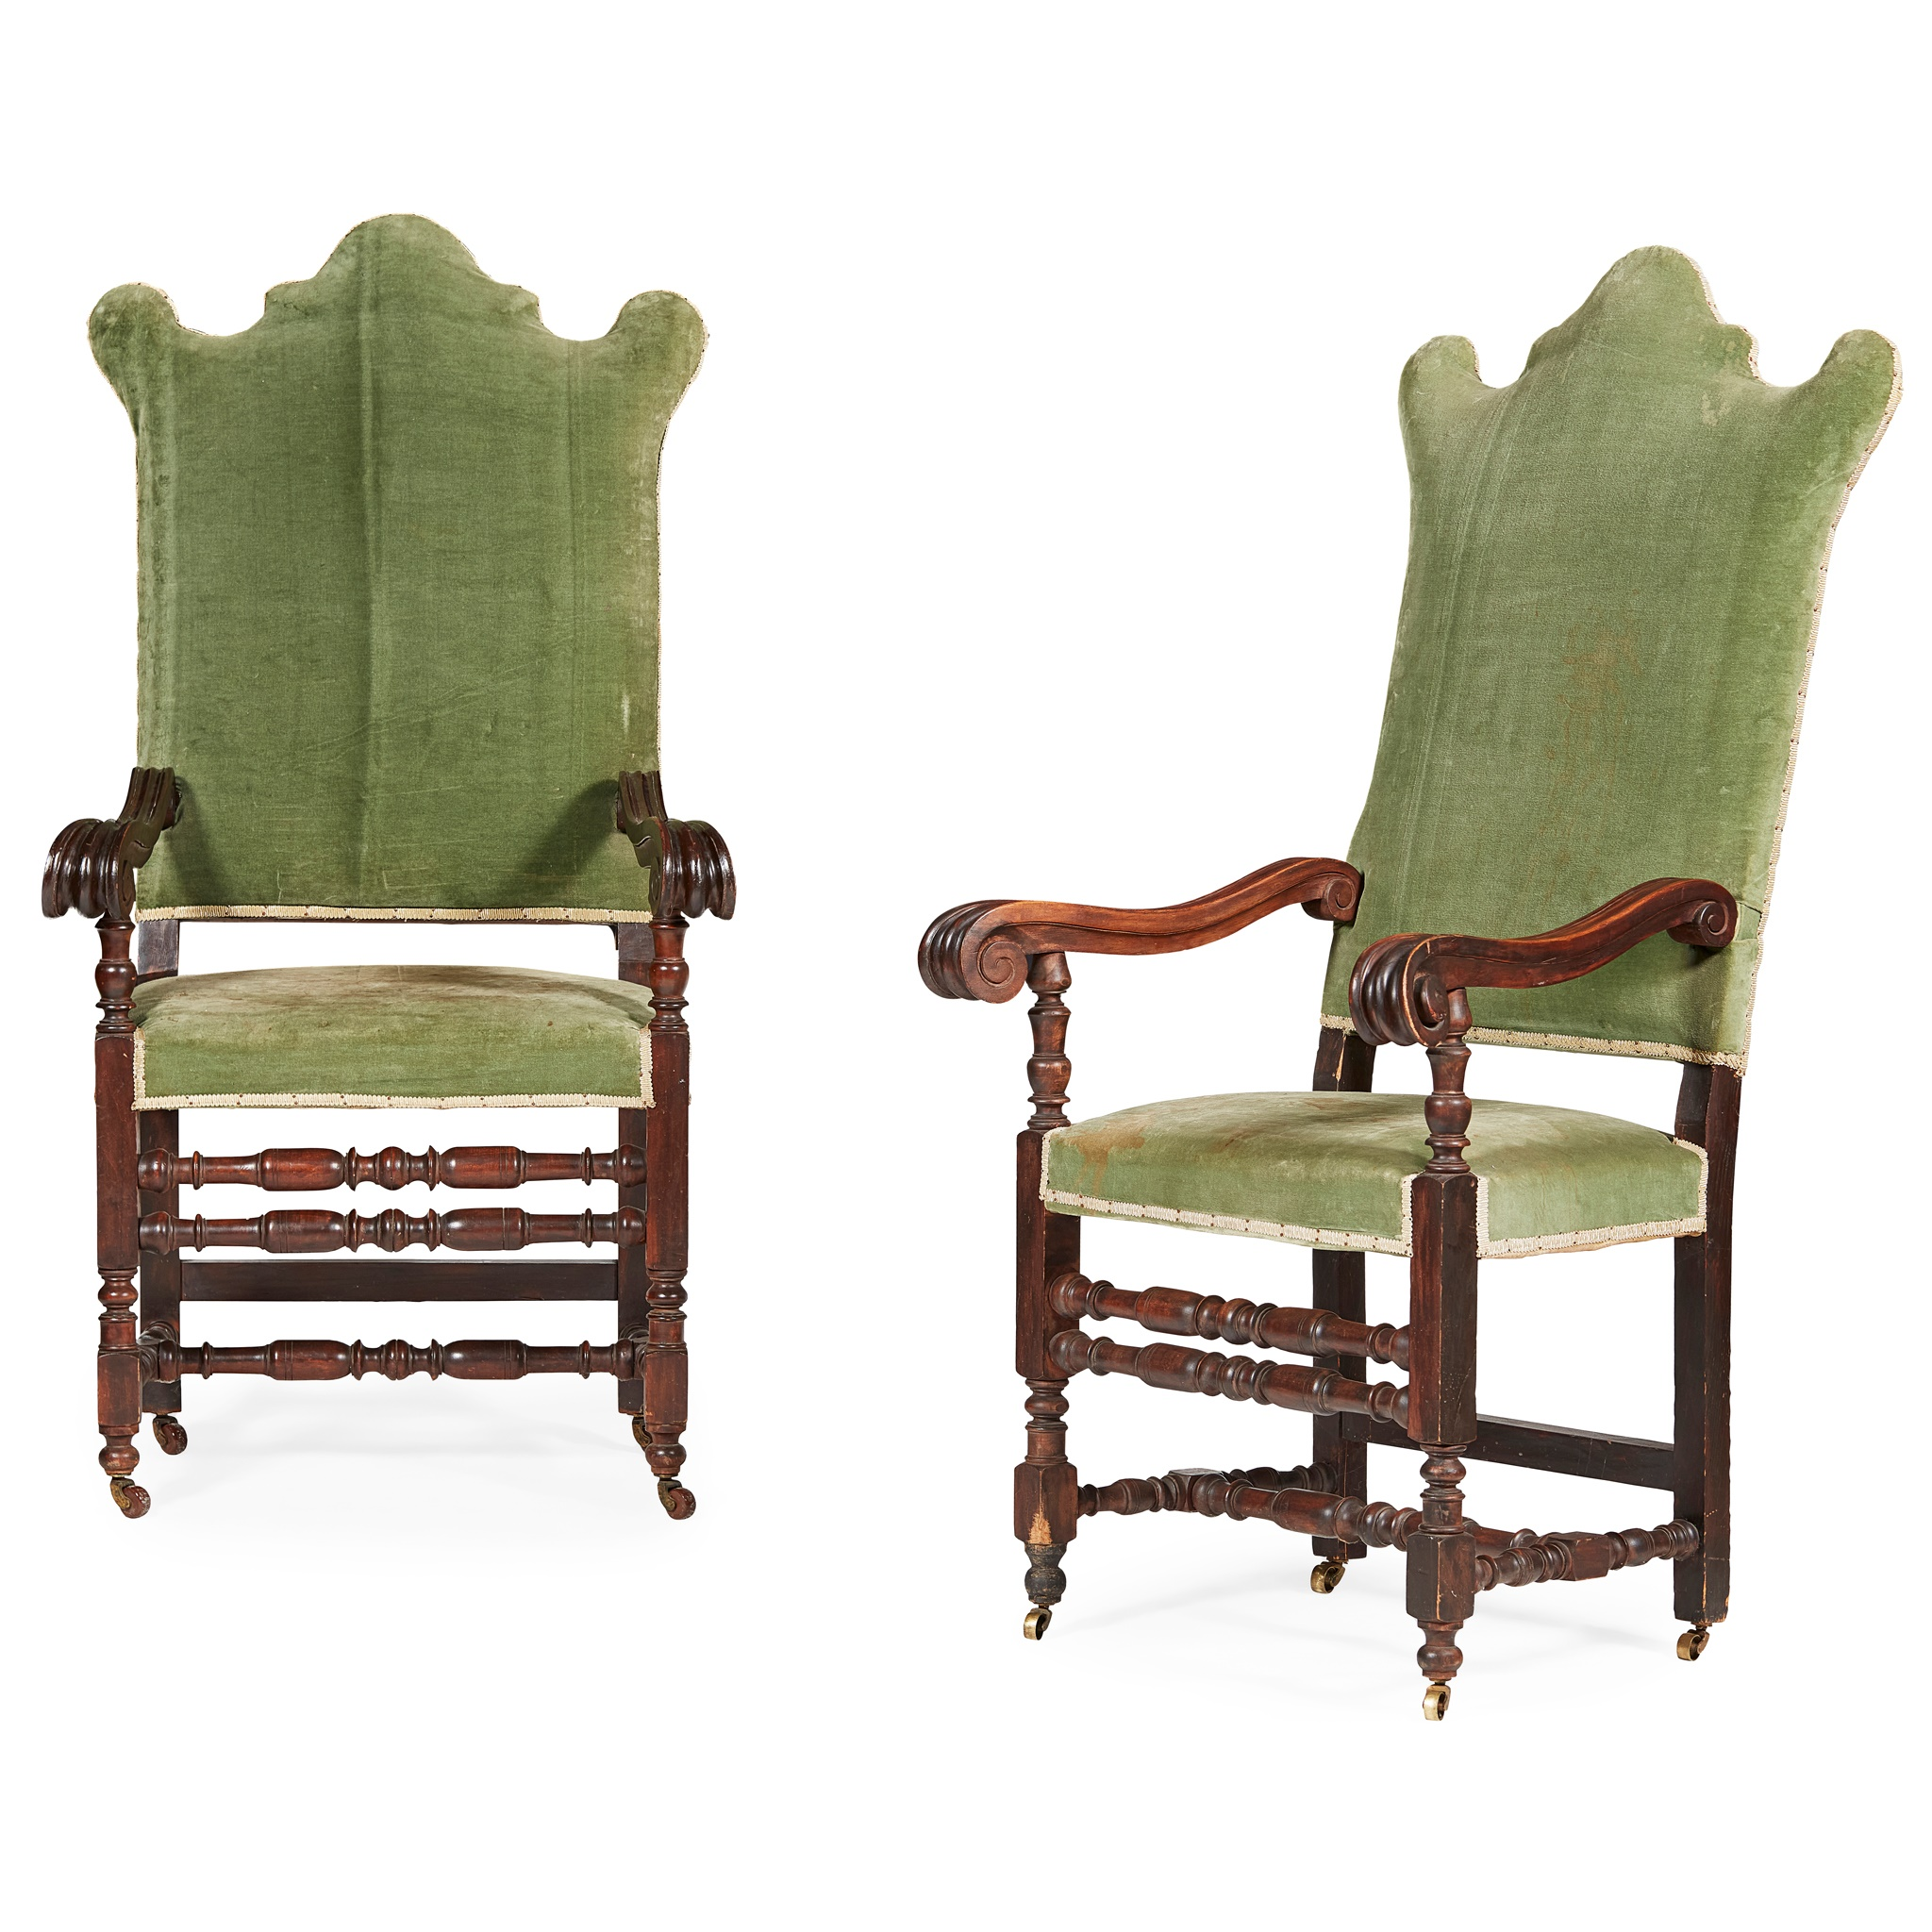 PAIR OF WILLIAM AND MARY STYLE WALNUT ARMCHAIRS 19TH CENTURY